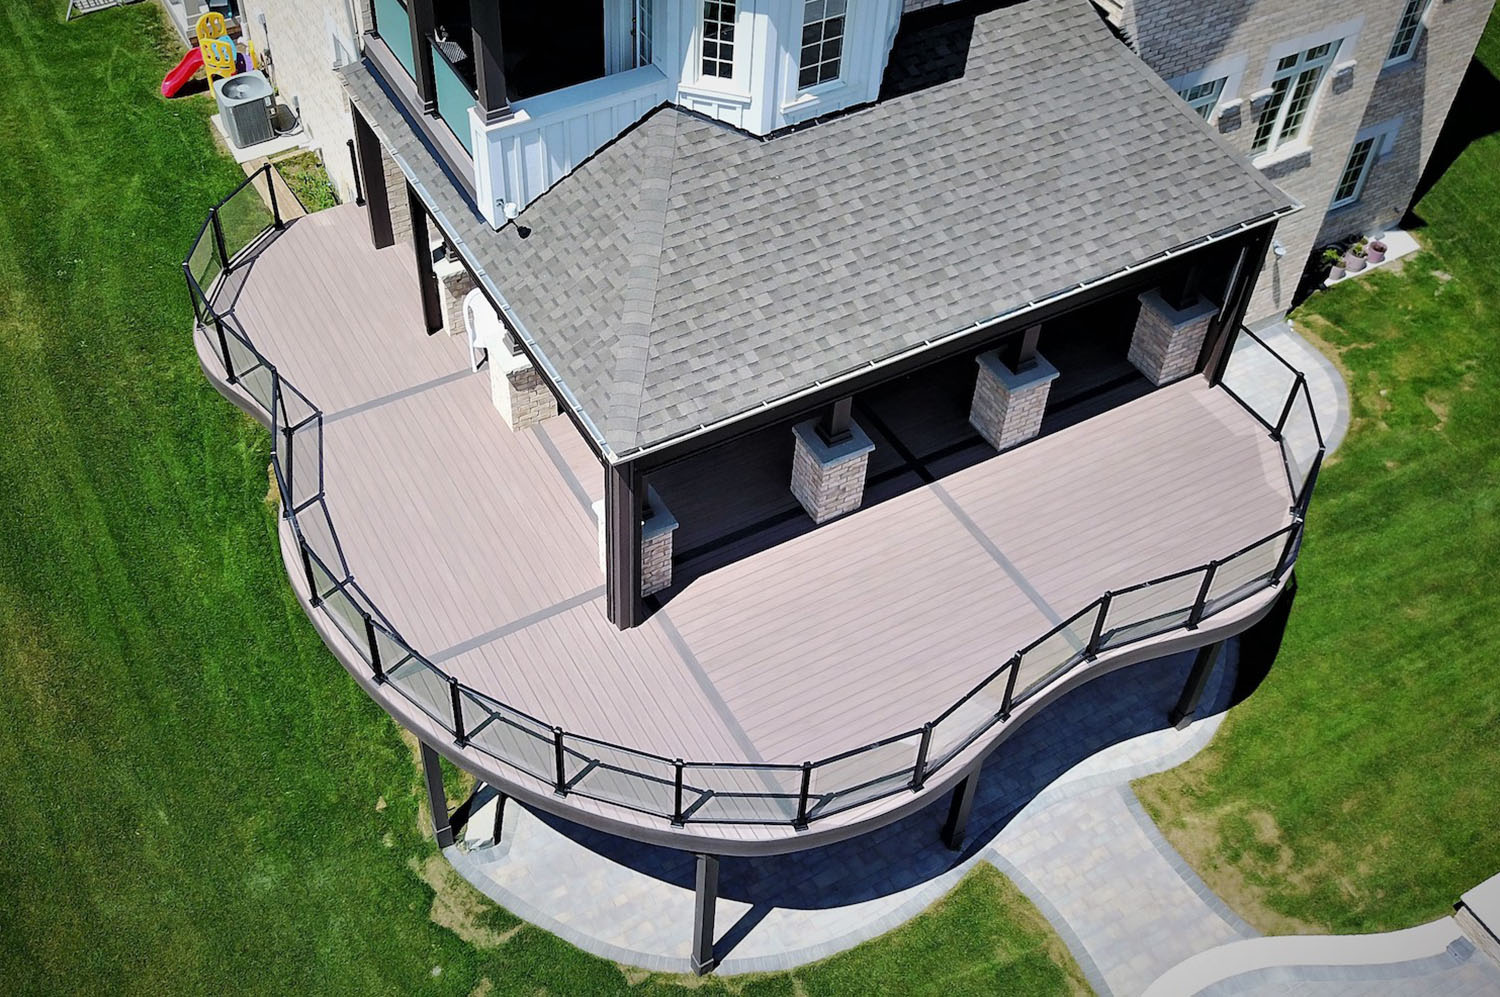 Low maintenance decks industry leading design build team whether youre a do it yourself family or seeking the help of a professional deck contractor deck construction is not only a personal choice its a matter solutioingenieria Gallery